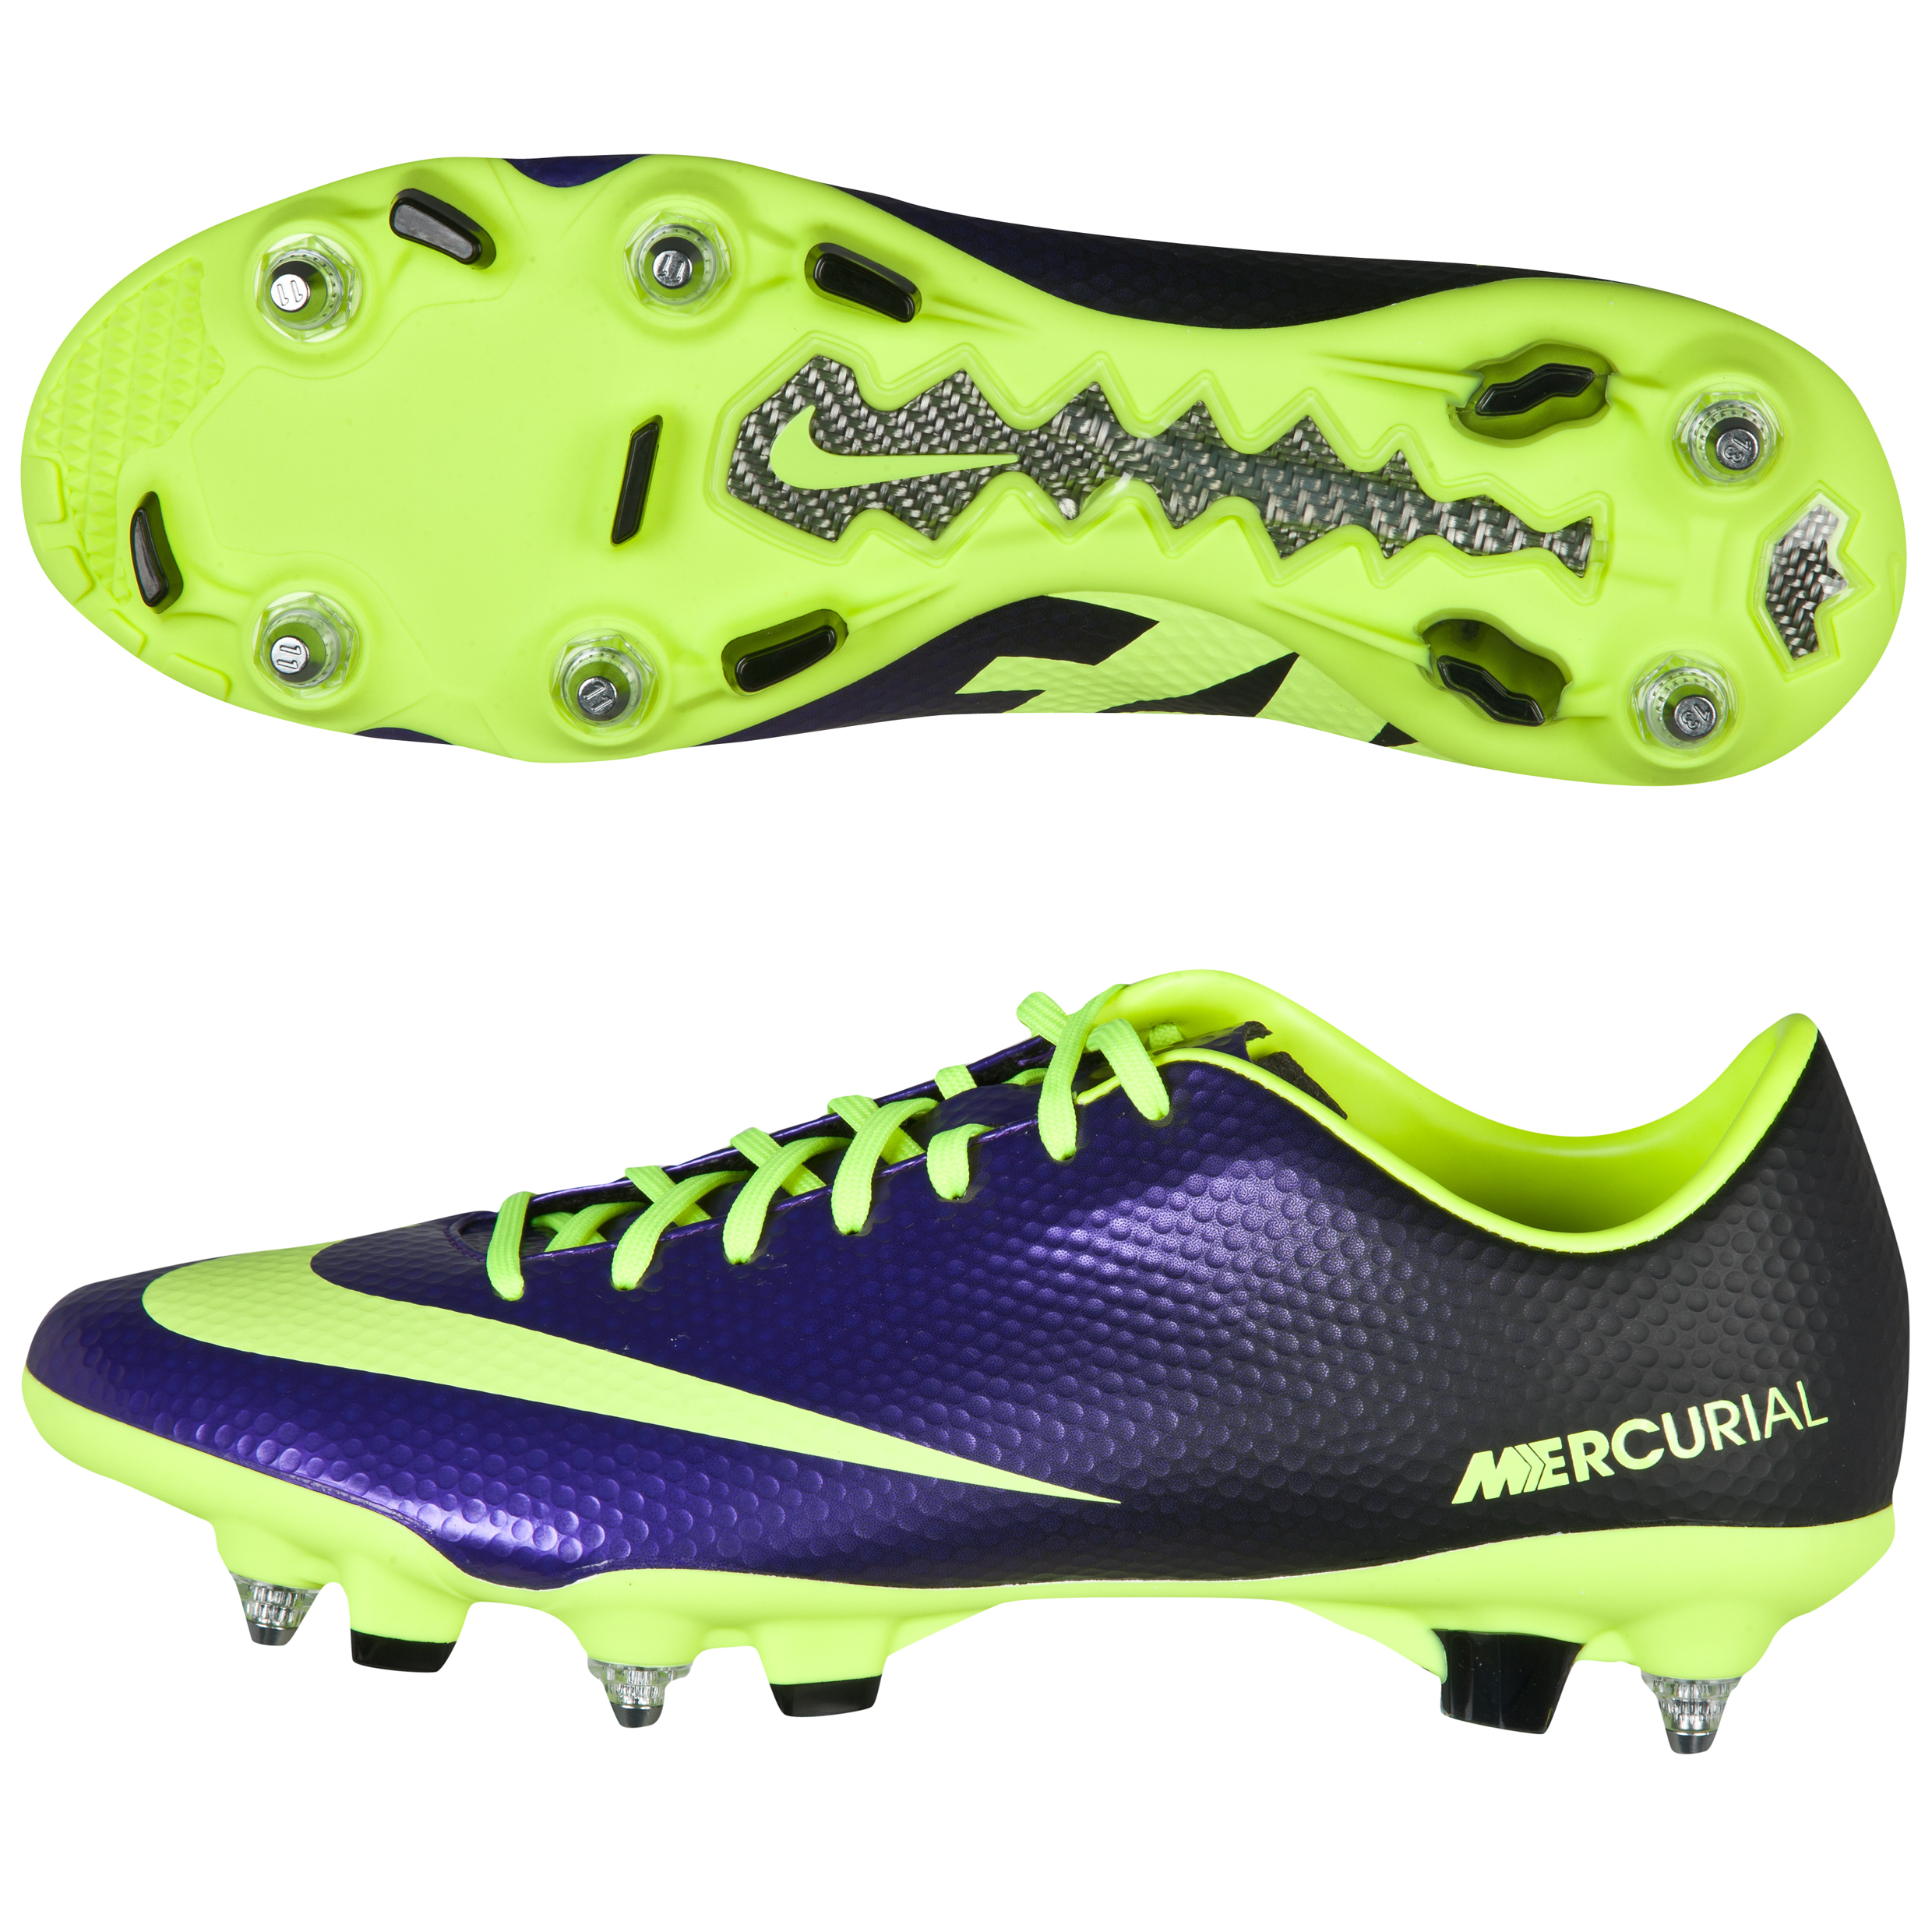 Nike Mercurial Veloce Soft Ground Pro Football Boots - Electro Purple/Volt/Black Purple